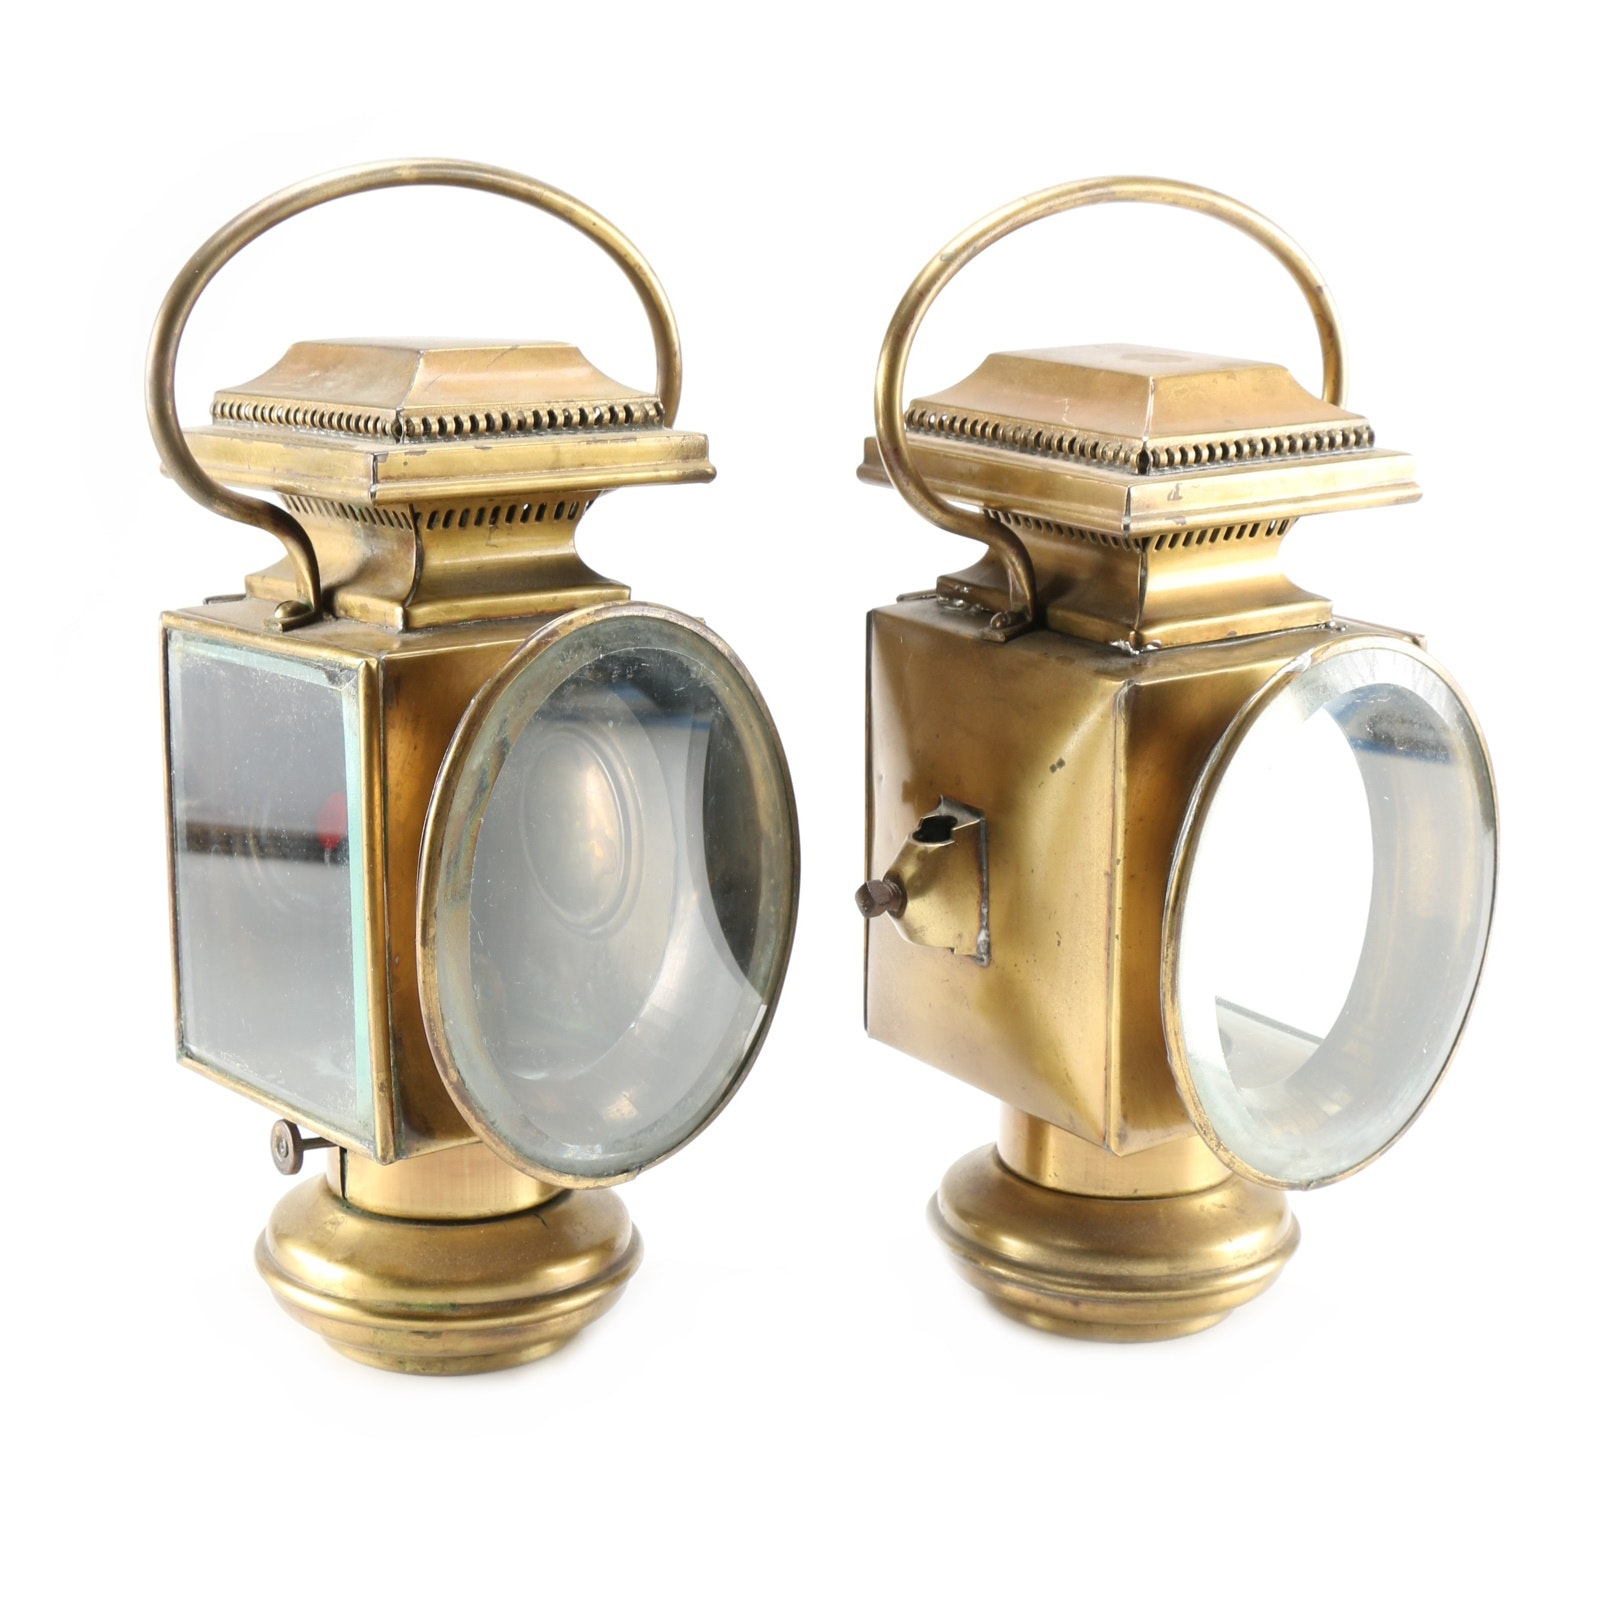 Pair of Antique French Brass Coach Lanterns